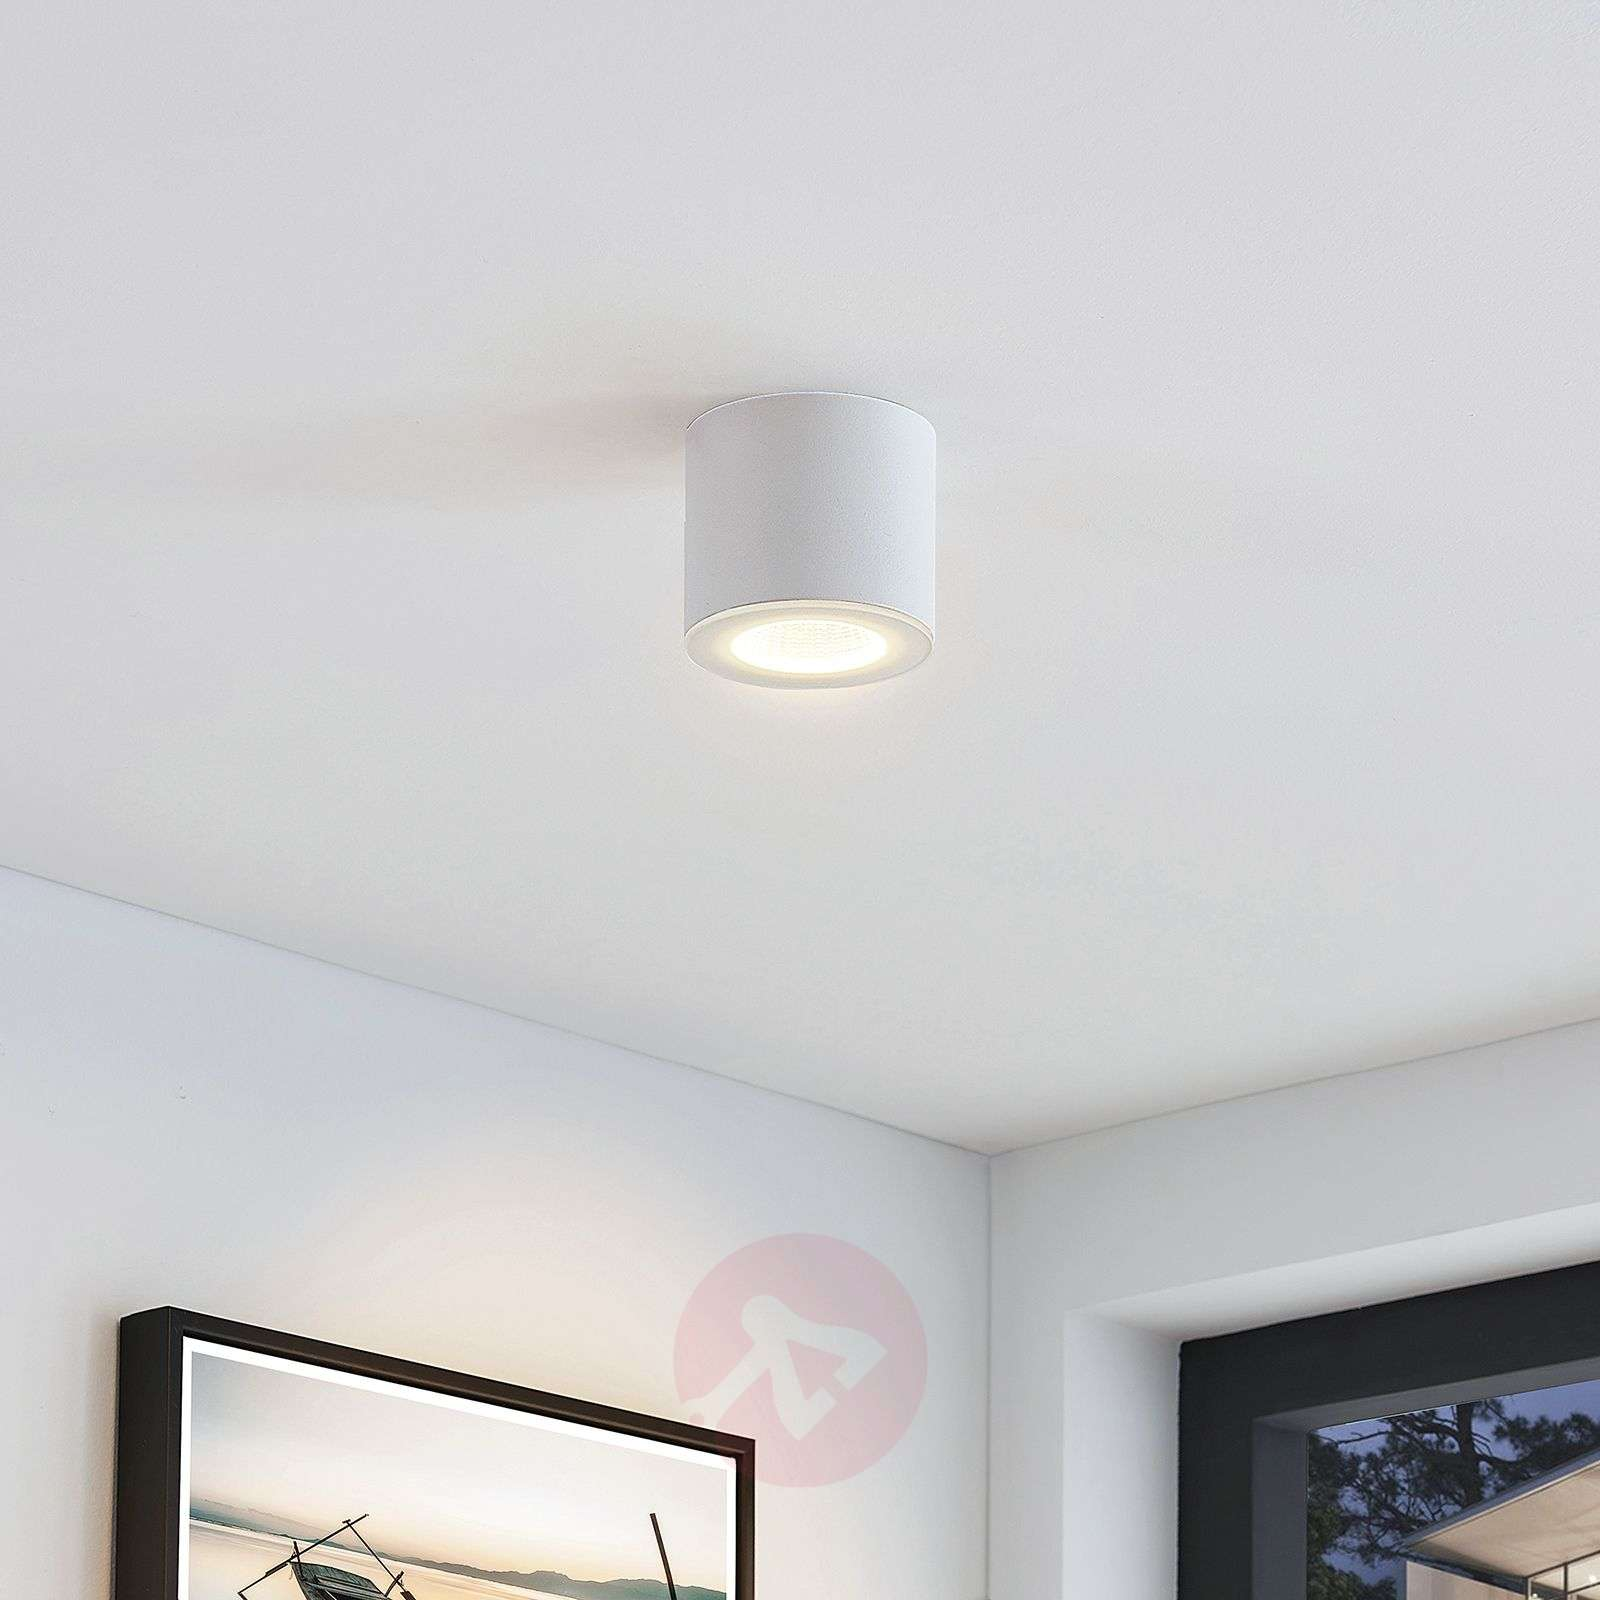 LED downlight Demiran in wit, rond-9624572-02